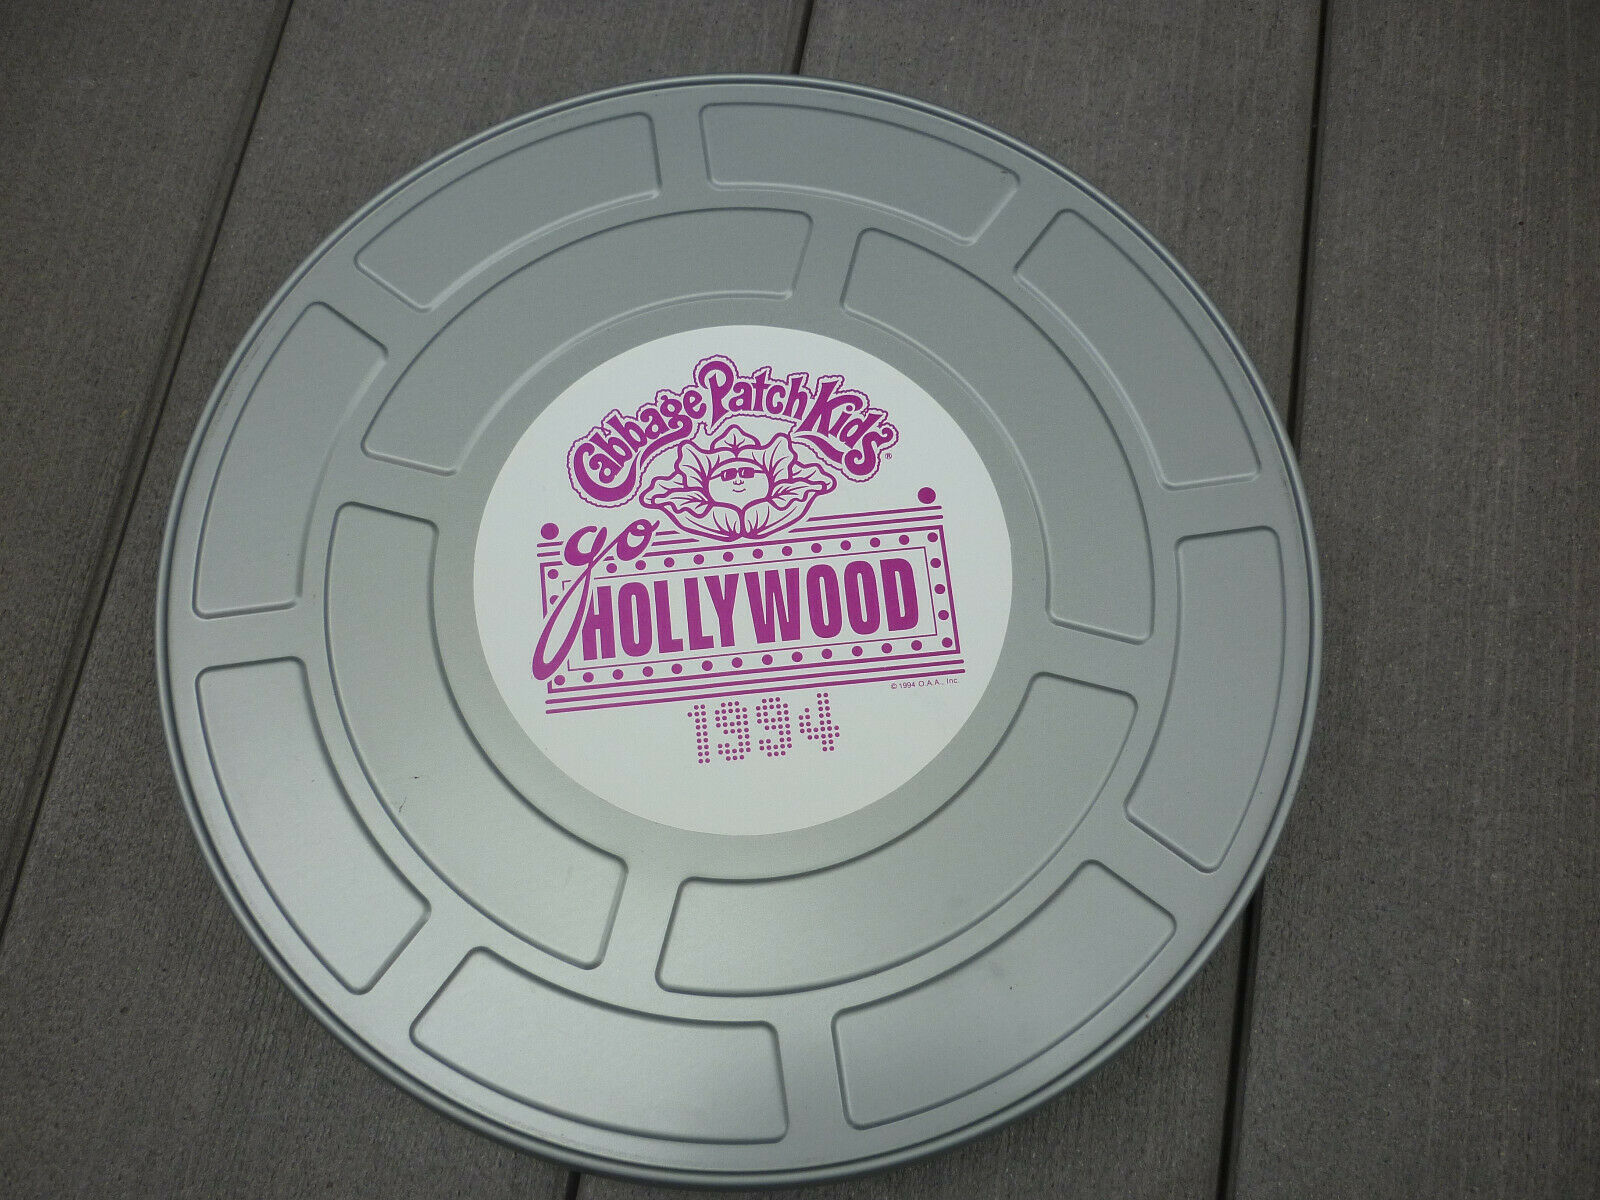 Cabbage Patch Kids Go Hollywood 1994 comprimidos Cannister Pin Etiqueta Memoribilia Lote